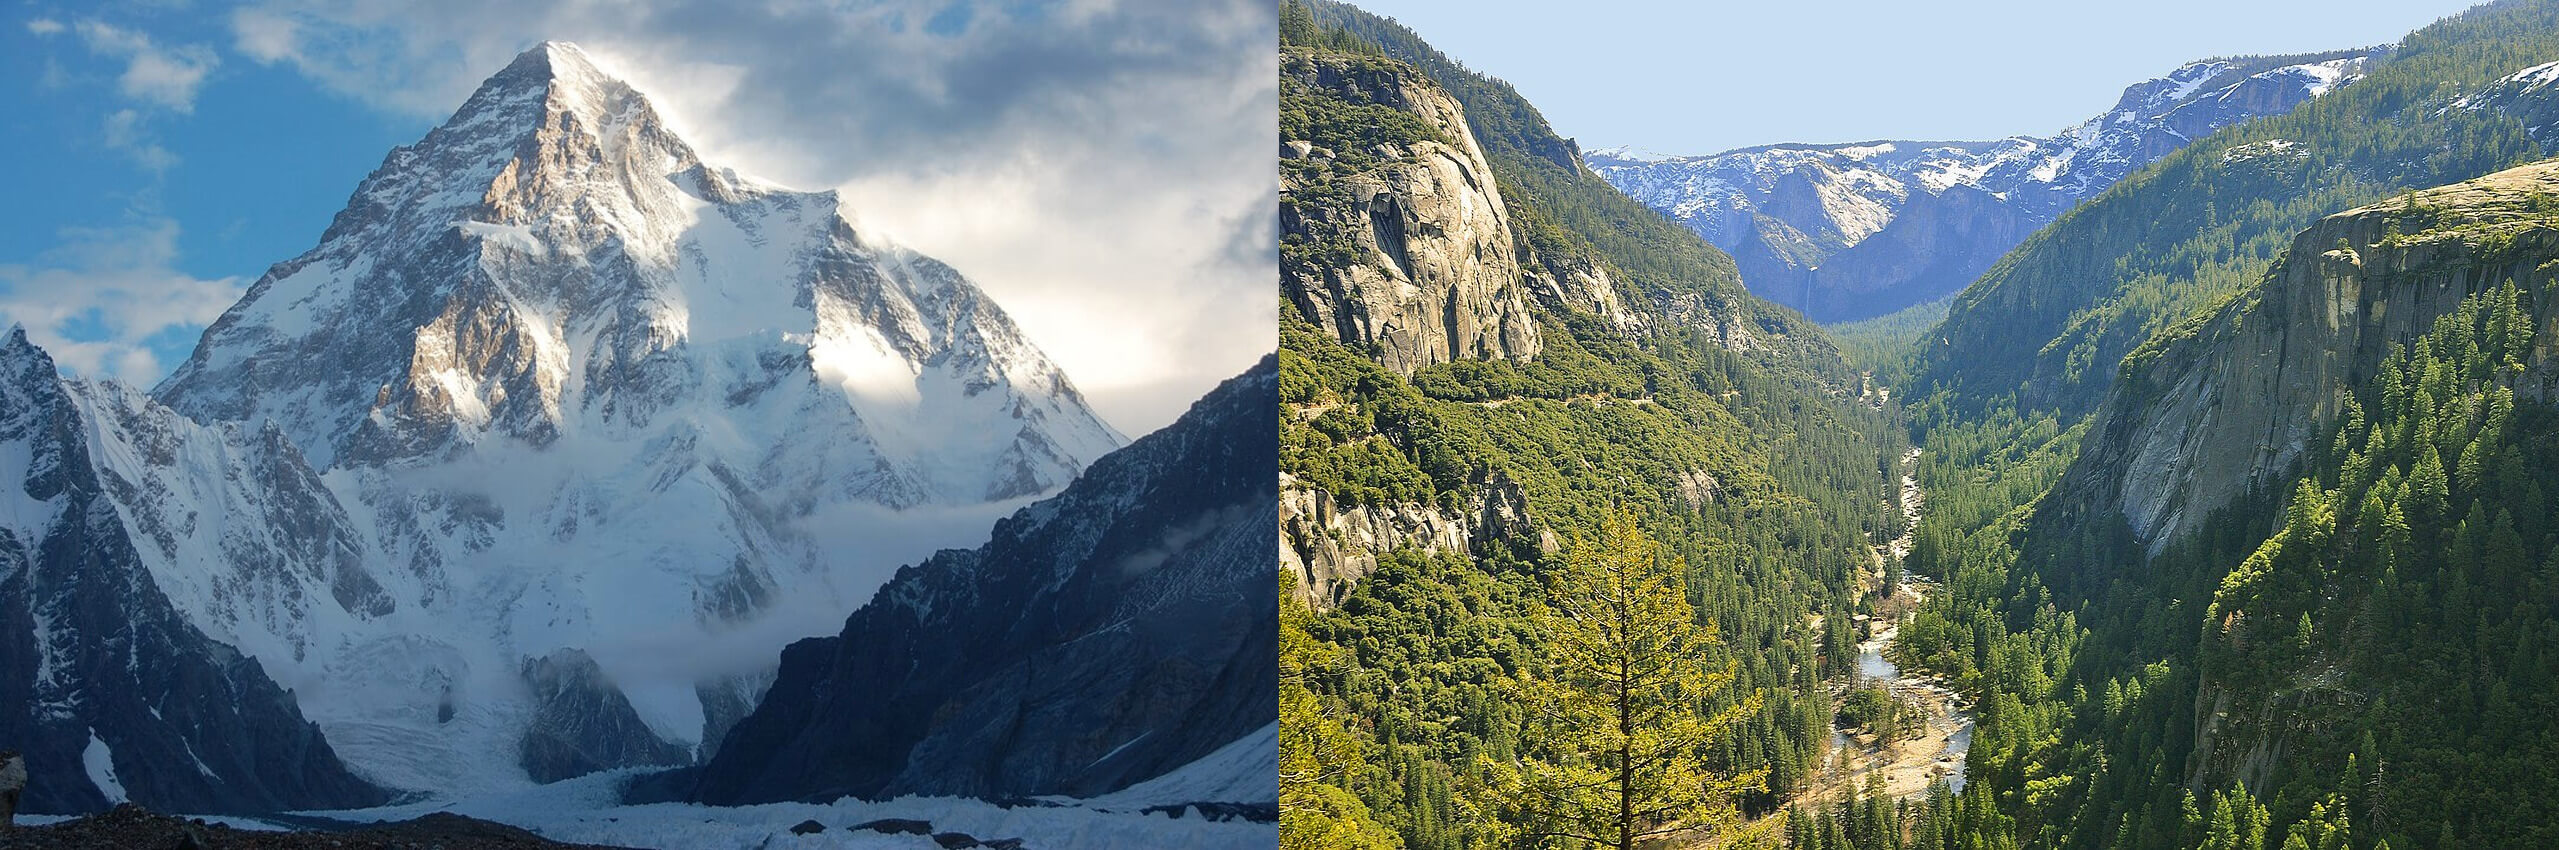 Difference Between Mountain and Valley